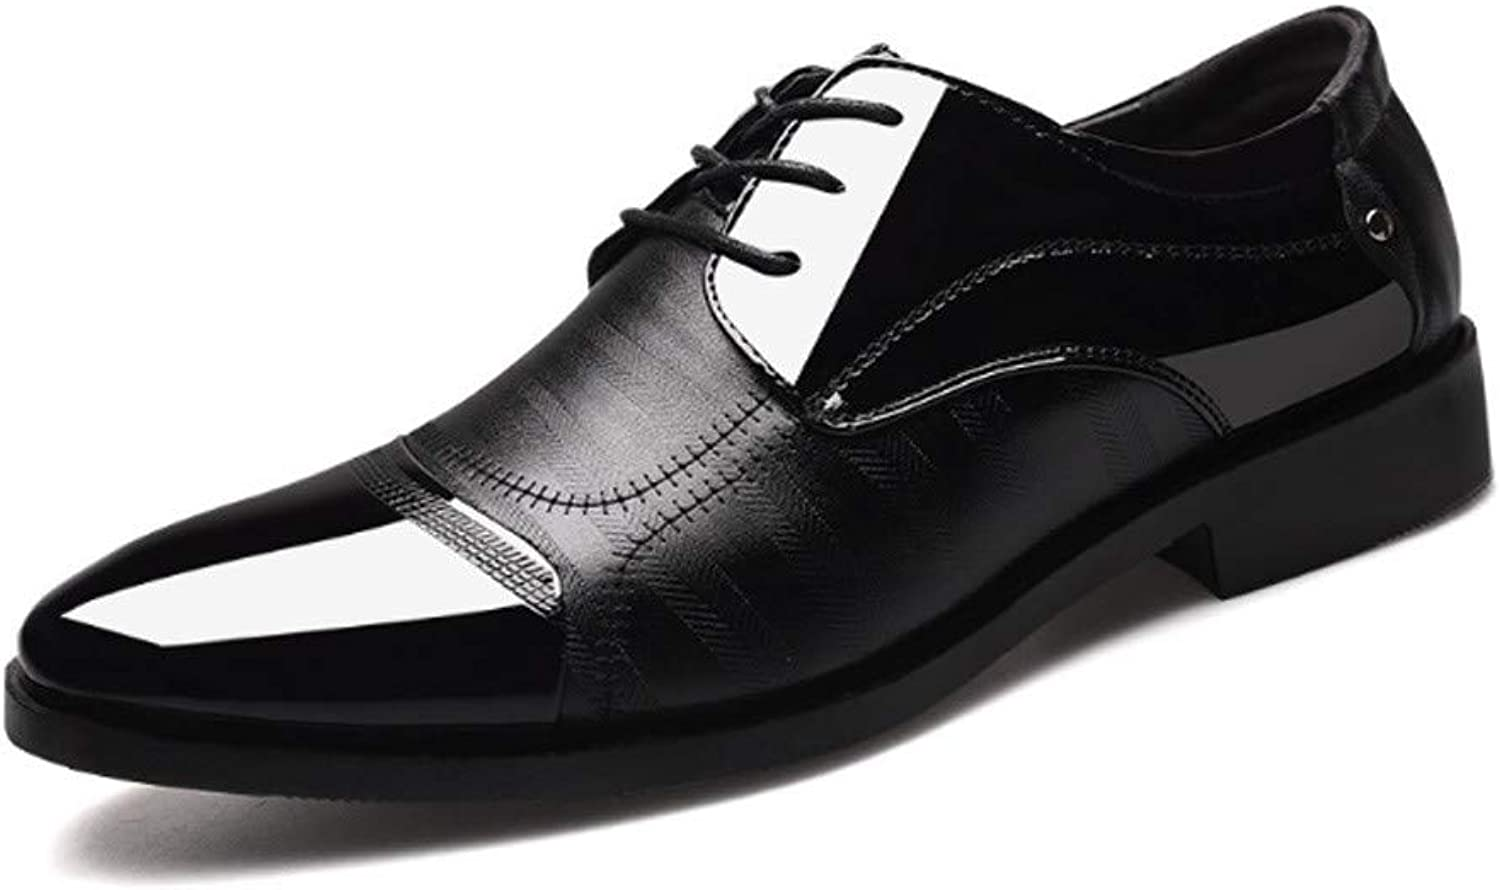 AADDIN Leather shoes Men Formal Leather shoes Men Business Office Wedding shoes Lace Up